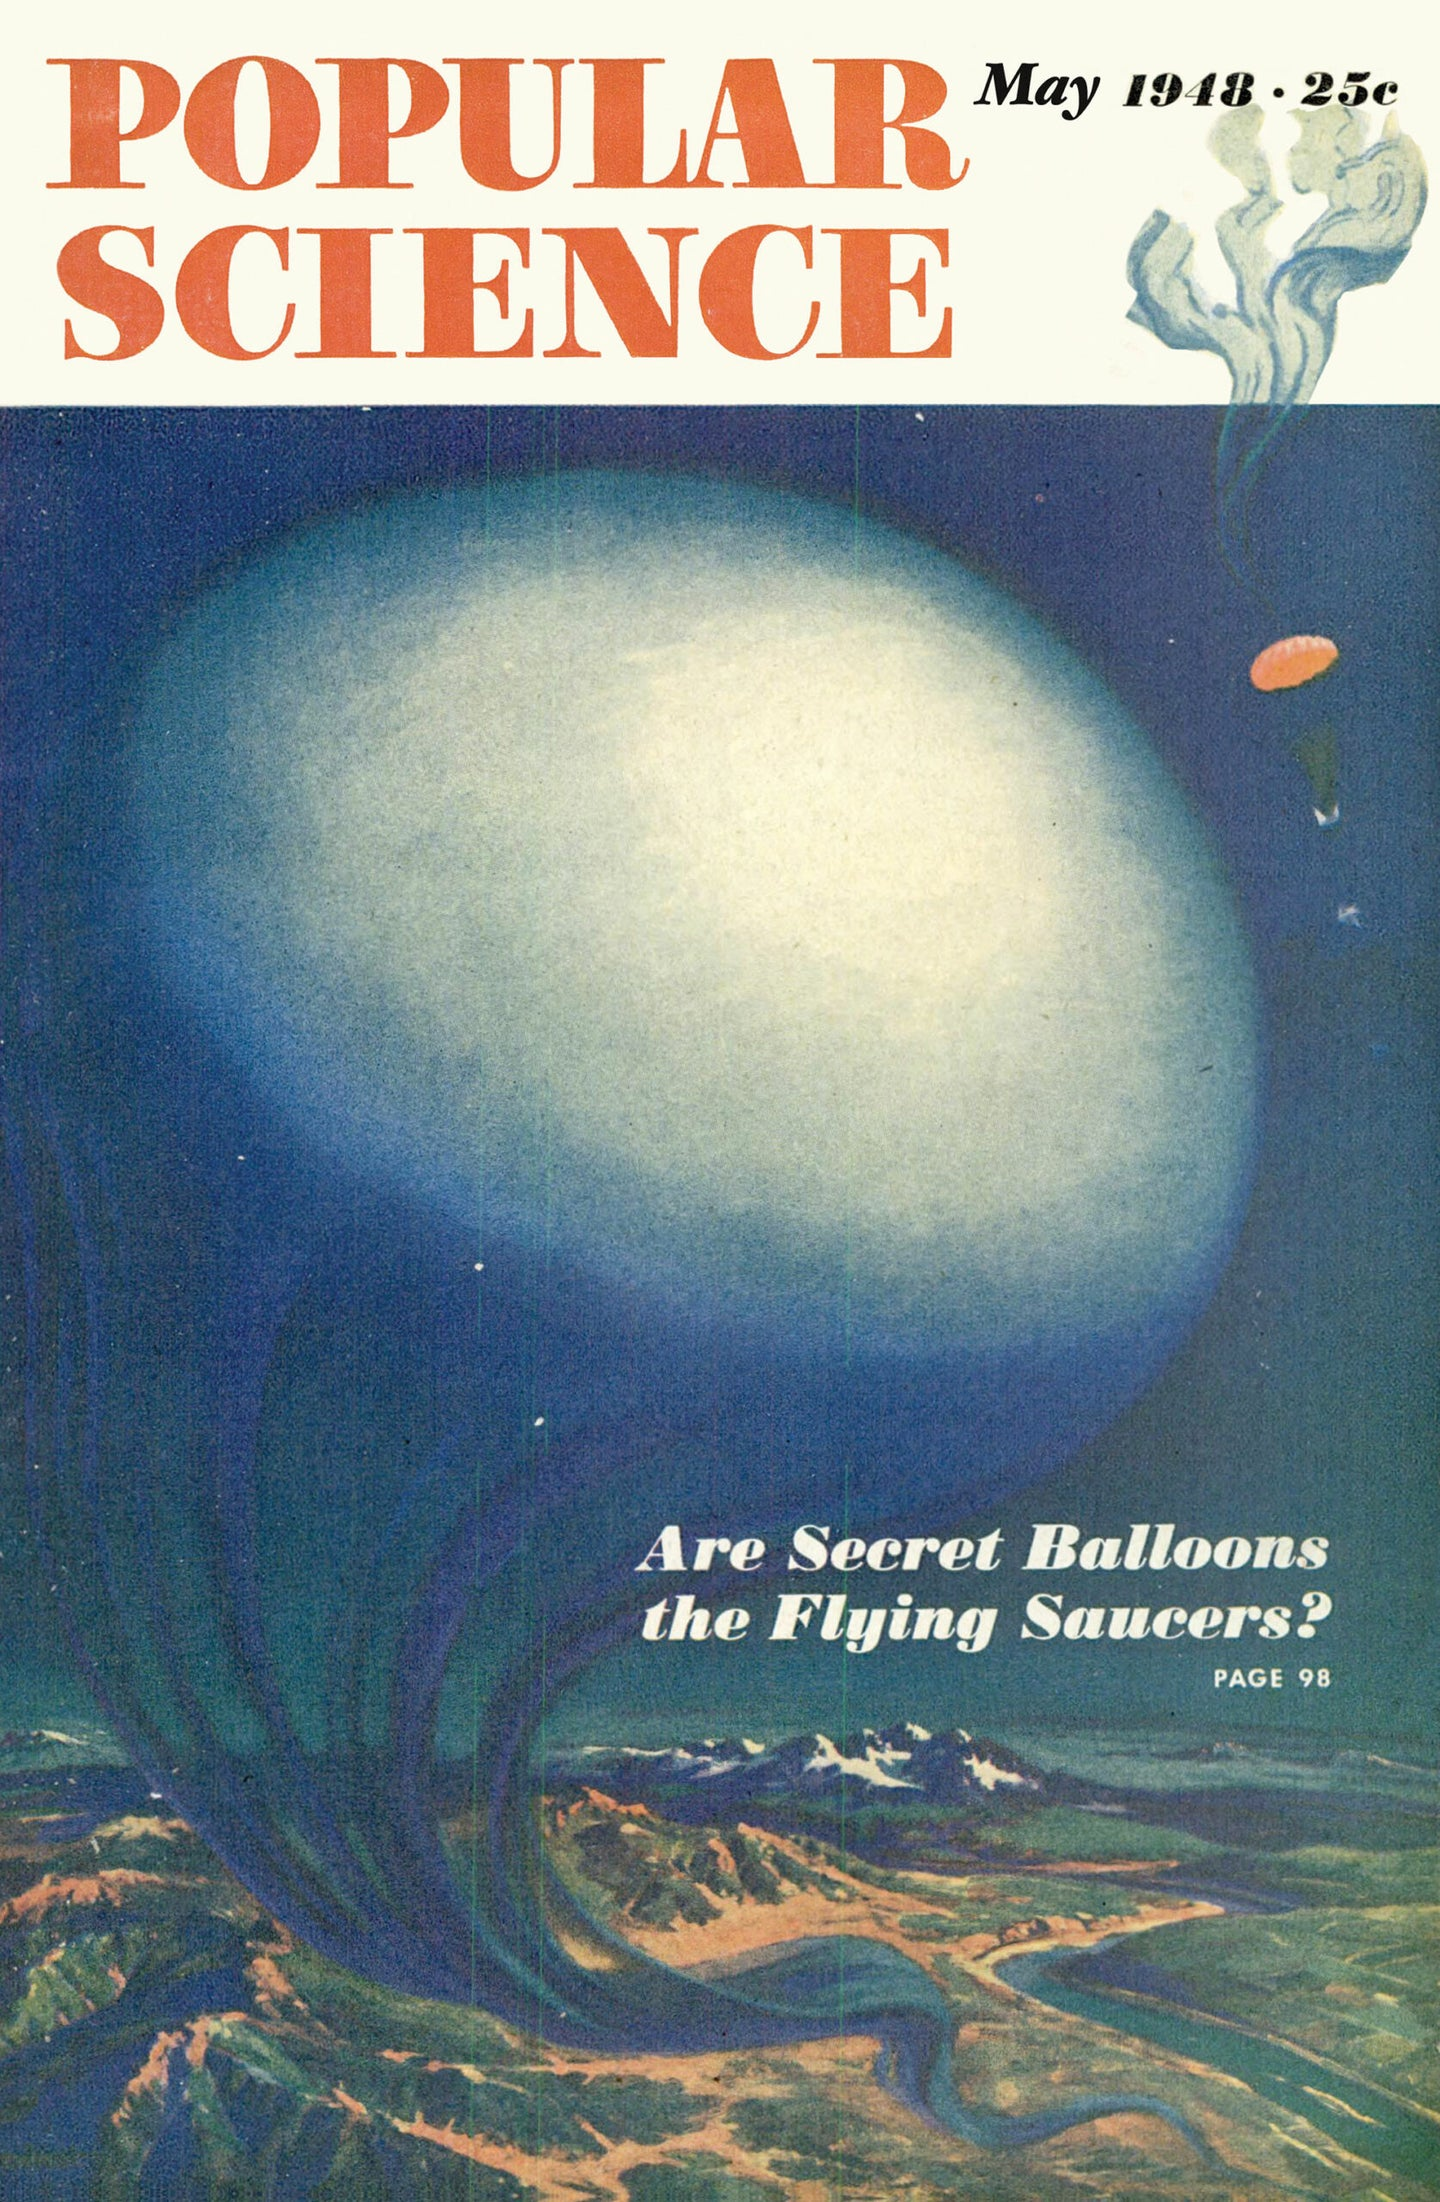 From The Archives: Balloons Explore The Stratosphere